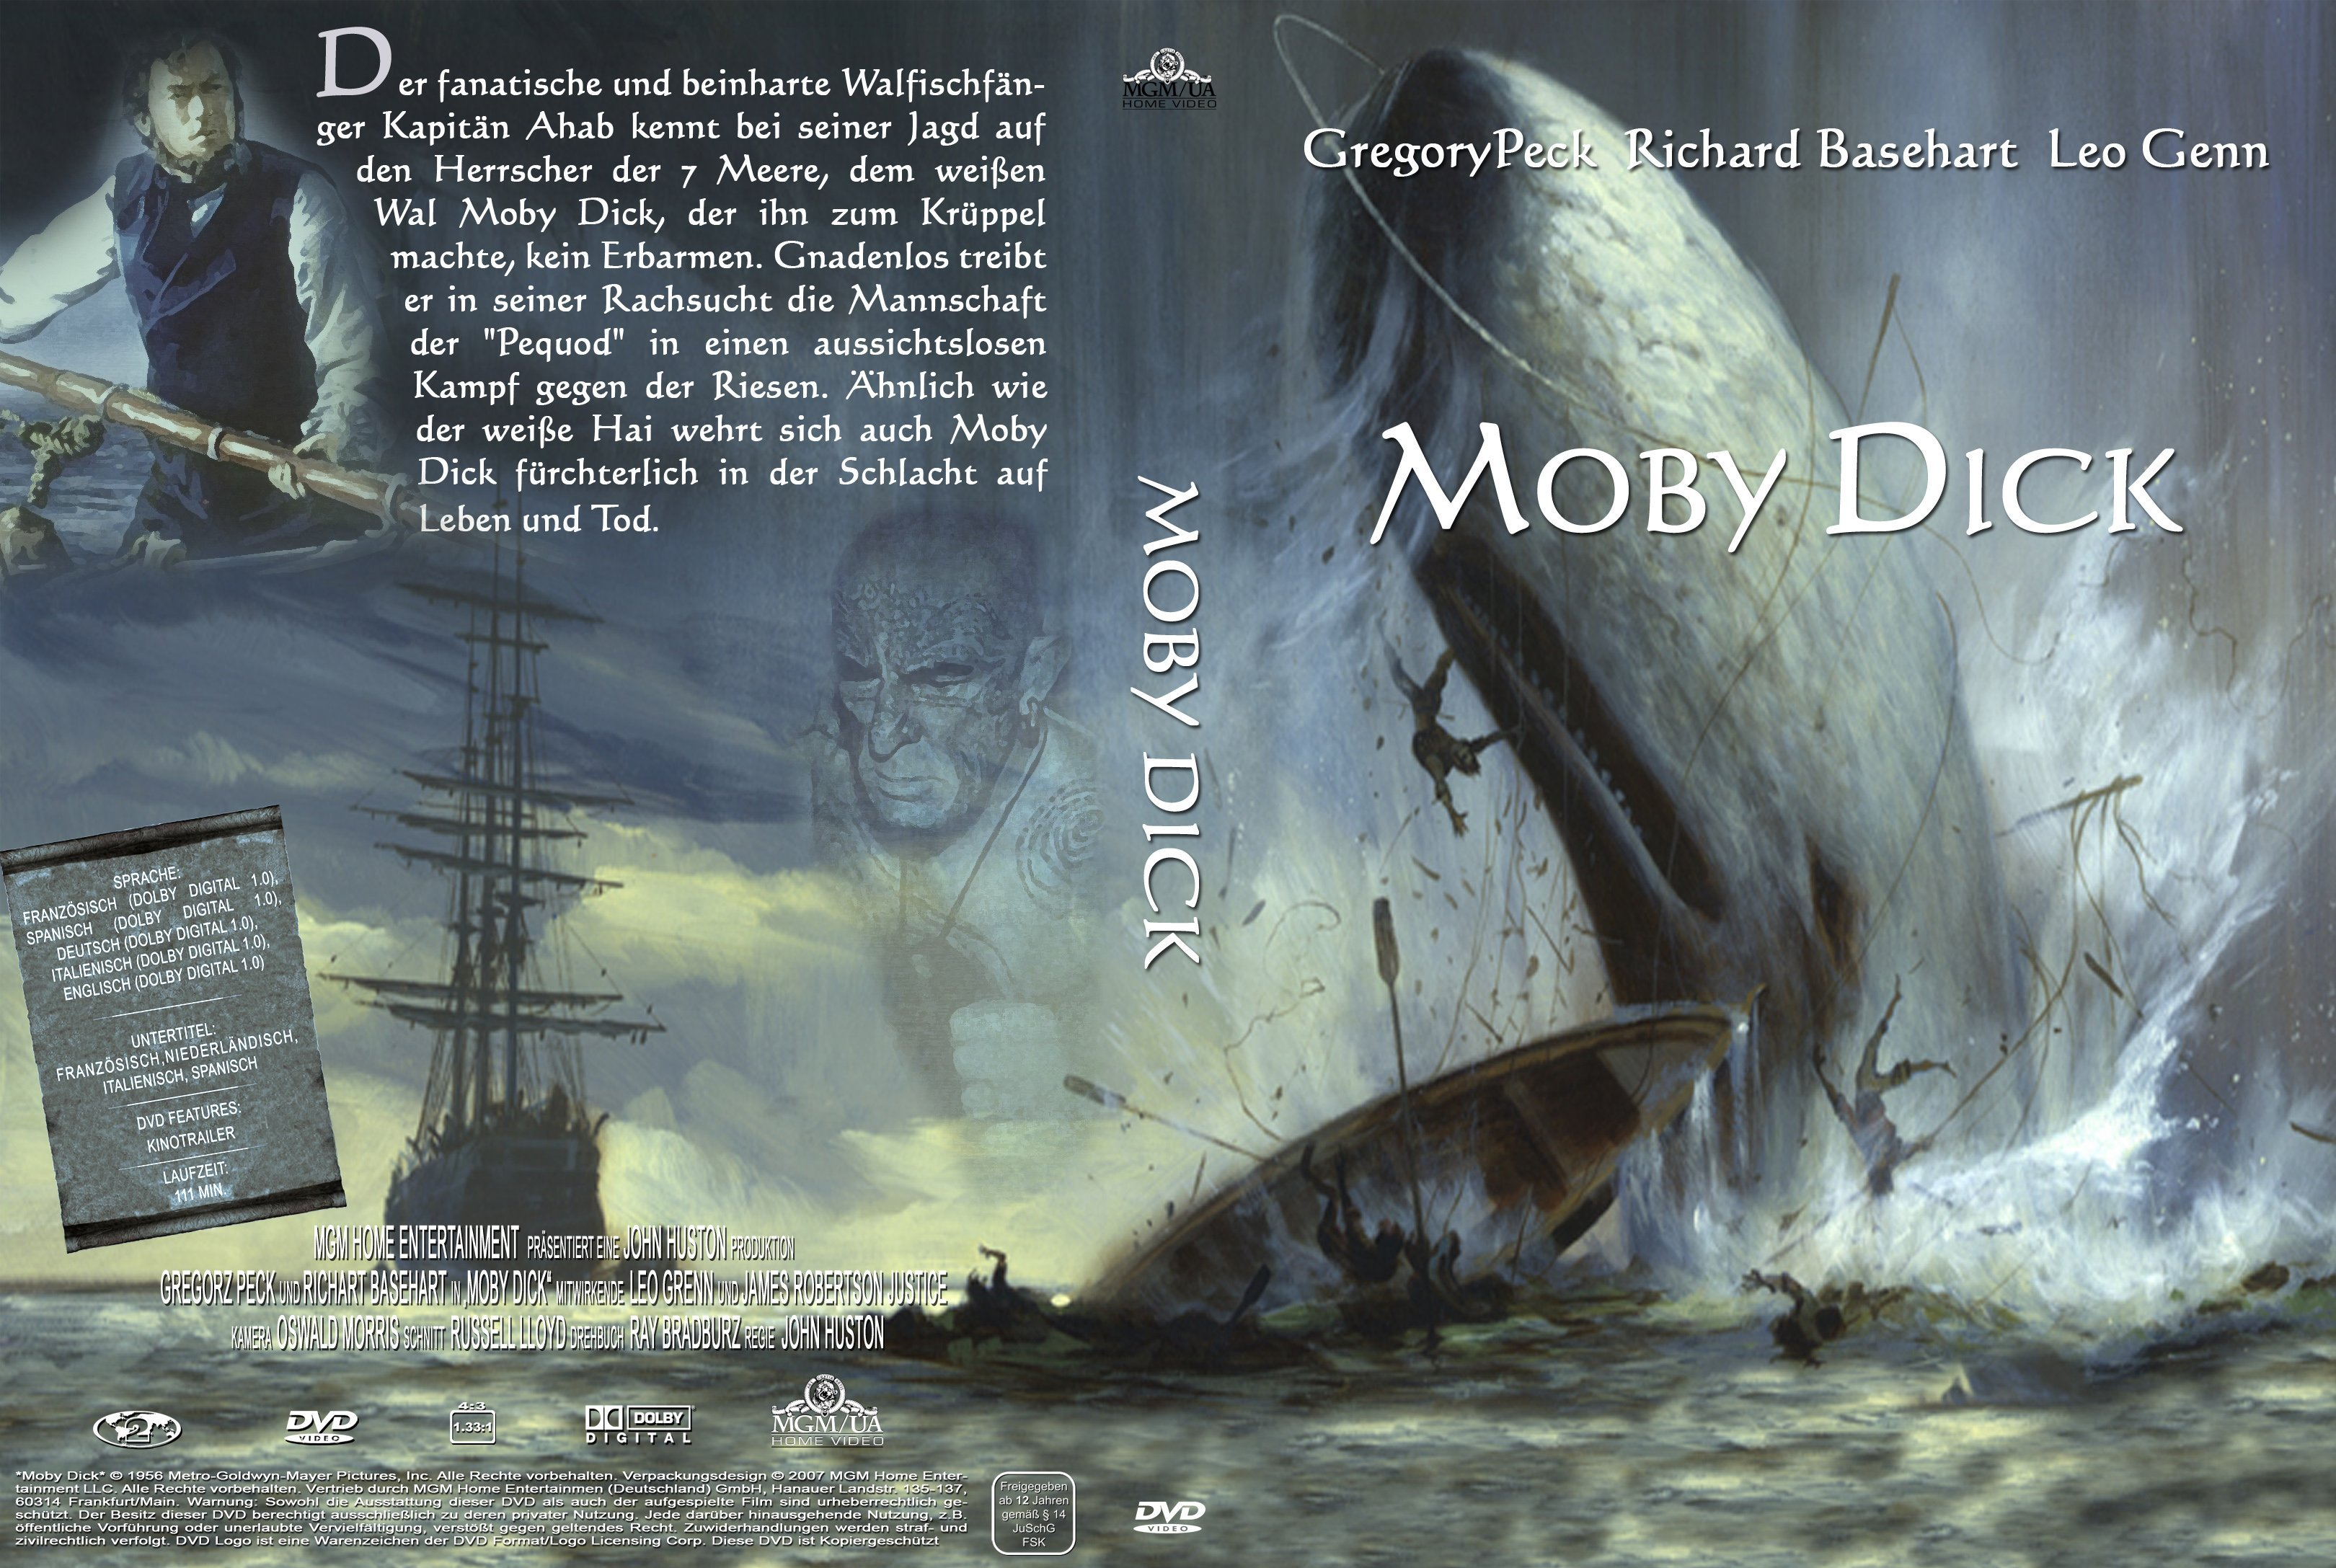 marxism analysis of moby dick Moby-dick (1851) is a whaling novel by herman melvillewhile some characters only appear in the shore-chapters at the beginning of the book, and others are captains and crewmembers of other ships, the majority of the characters are crewmembers of the pequod.